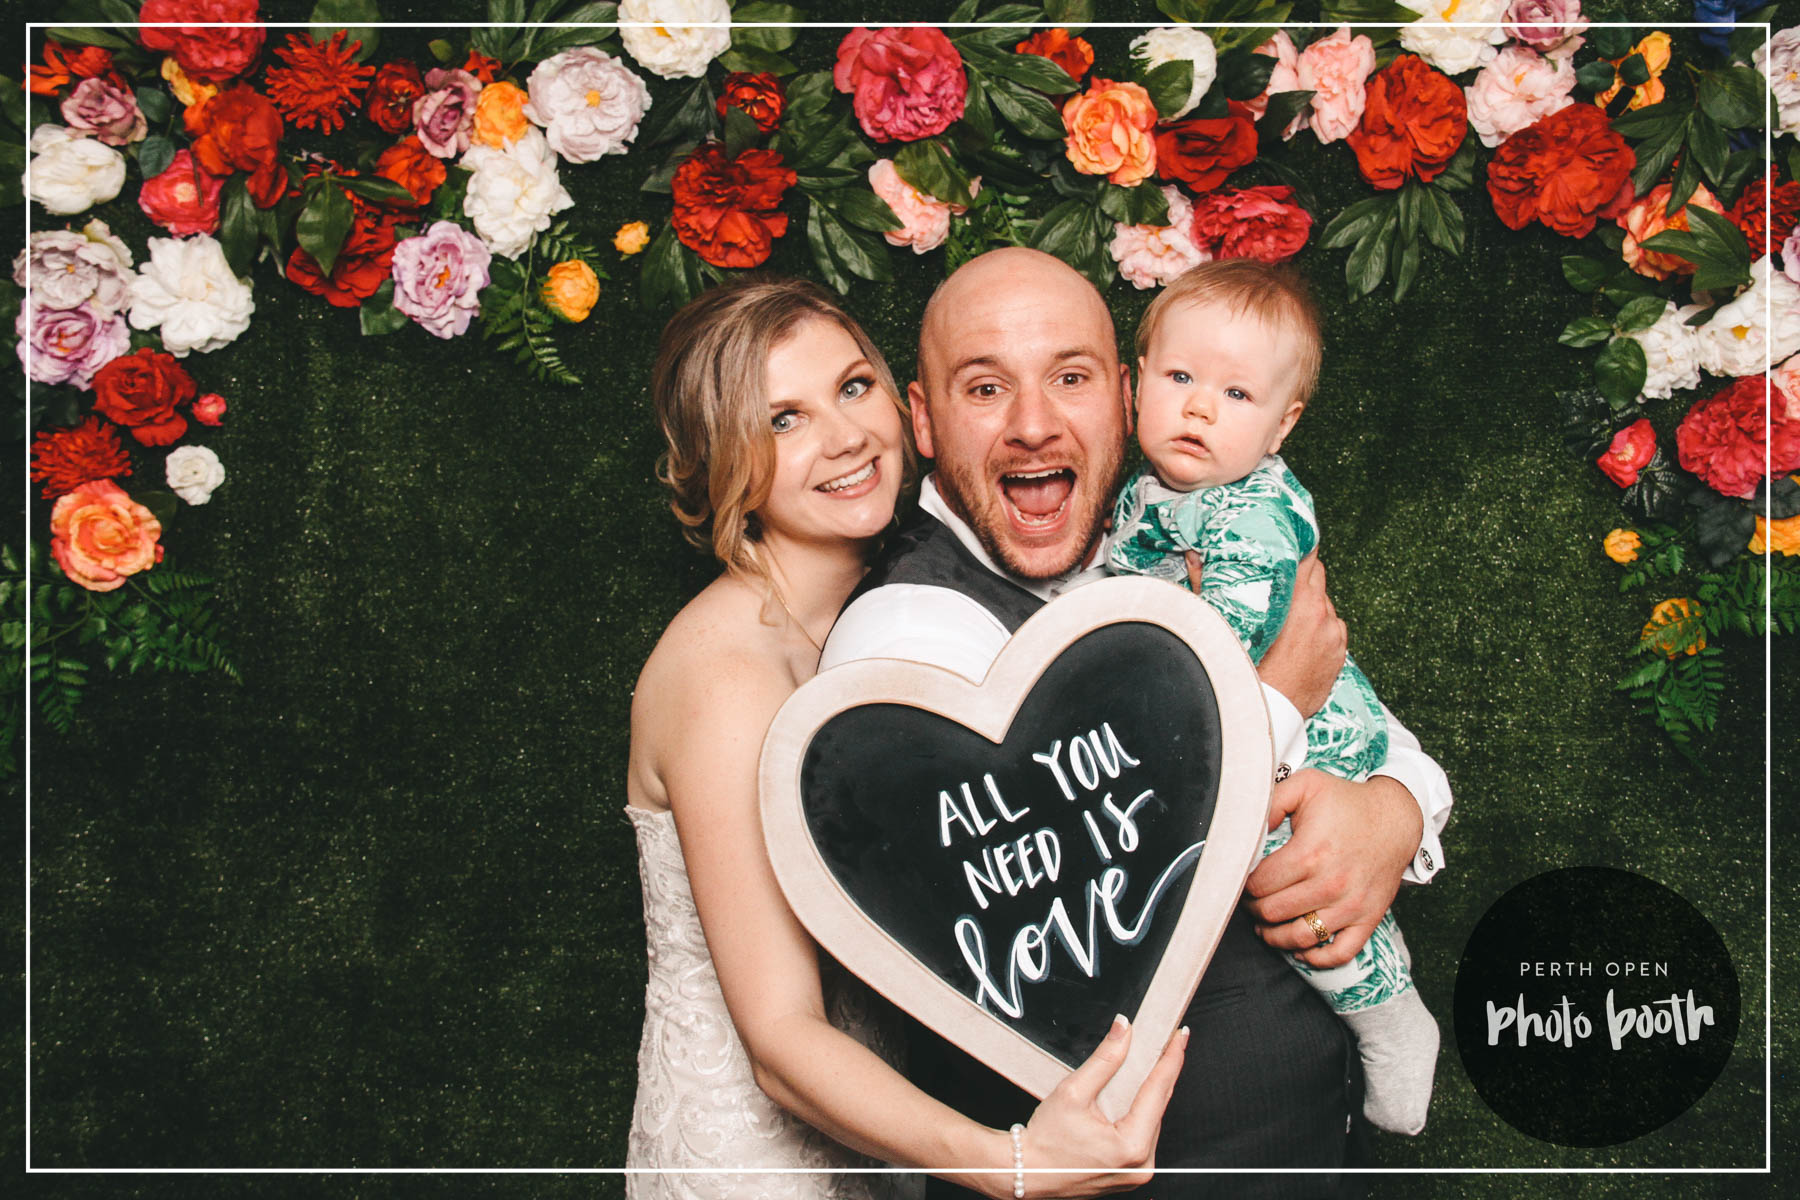 GERAINT & VICTORIA'S WEDDING   PASSWORD: PROVIDED ON THE NIGHT   - ALL LOWERCASE -